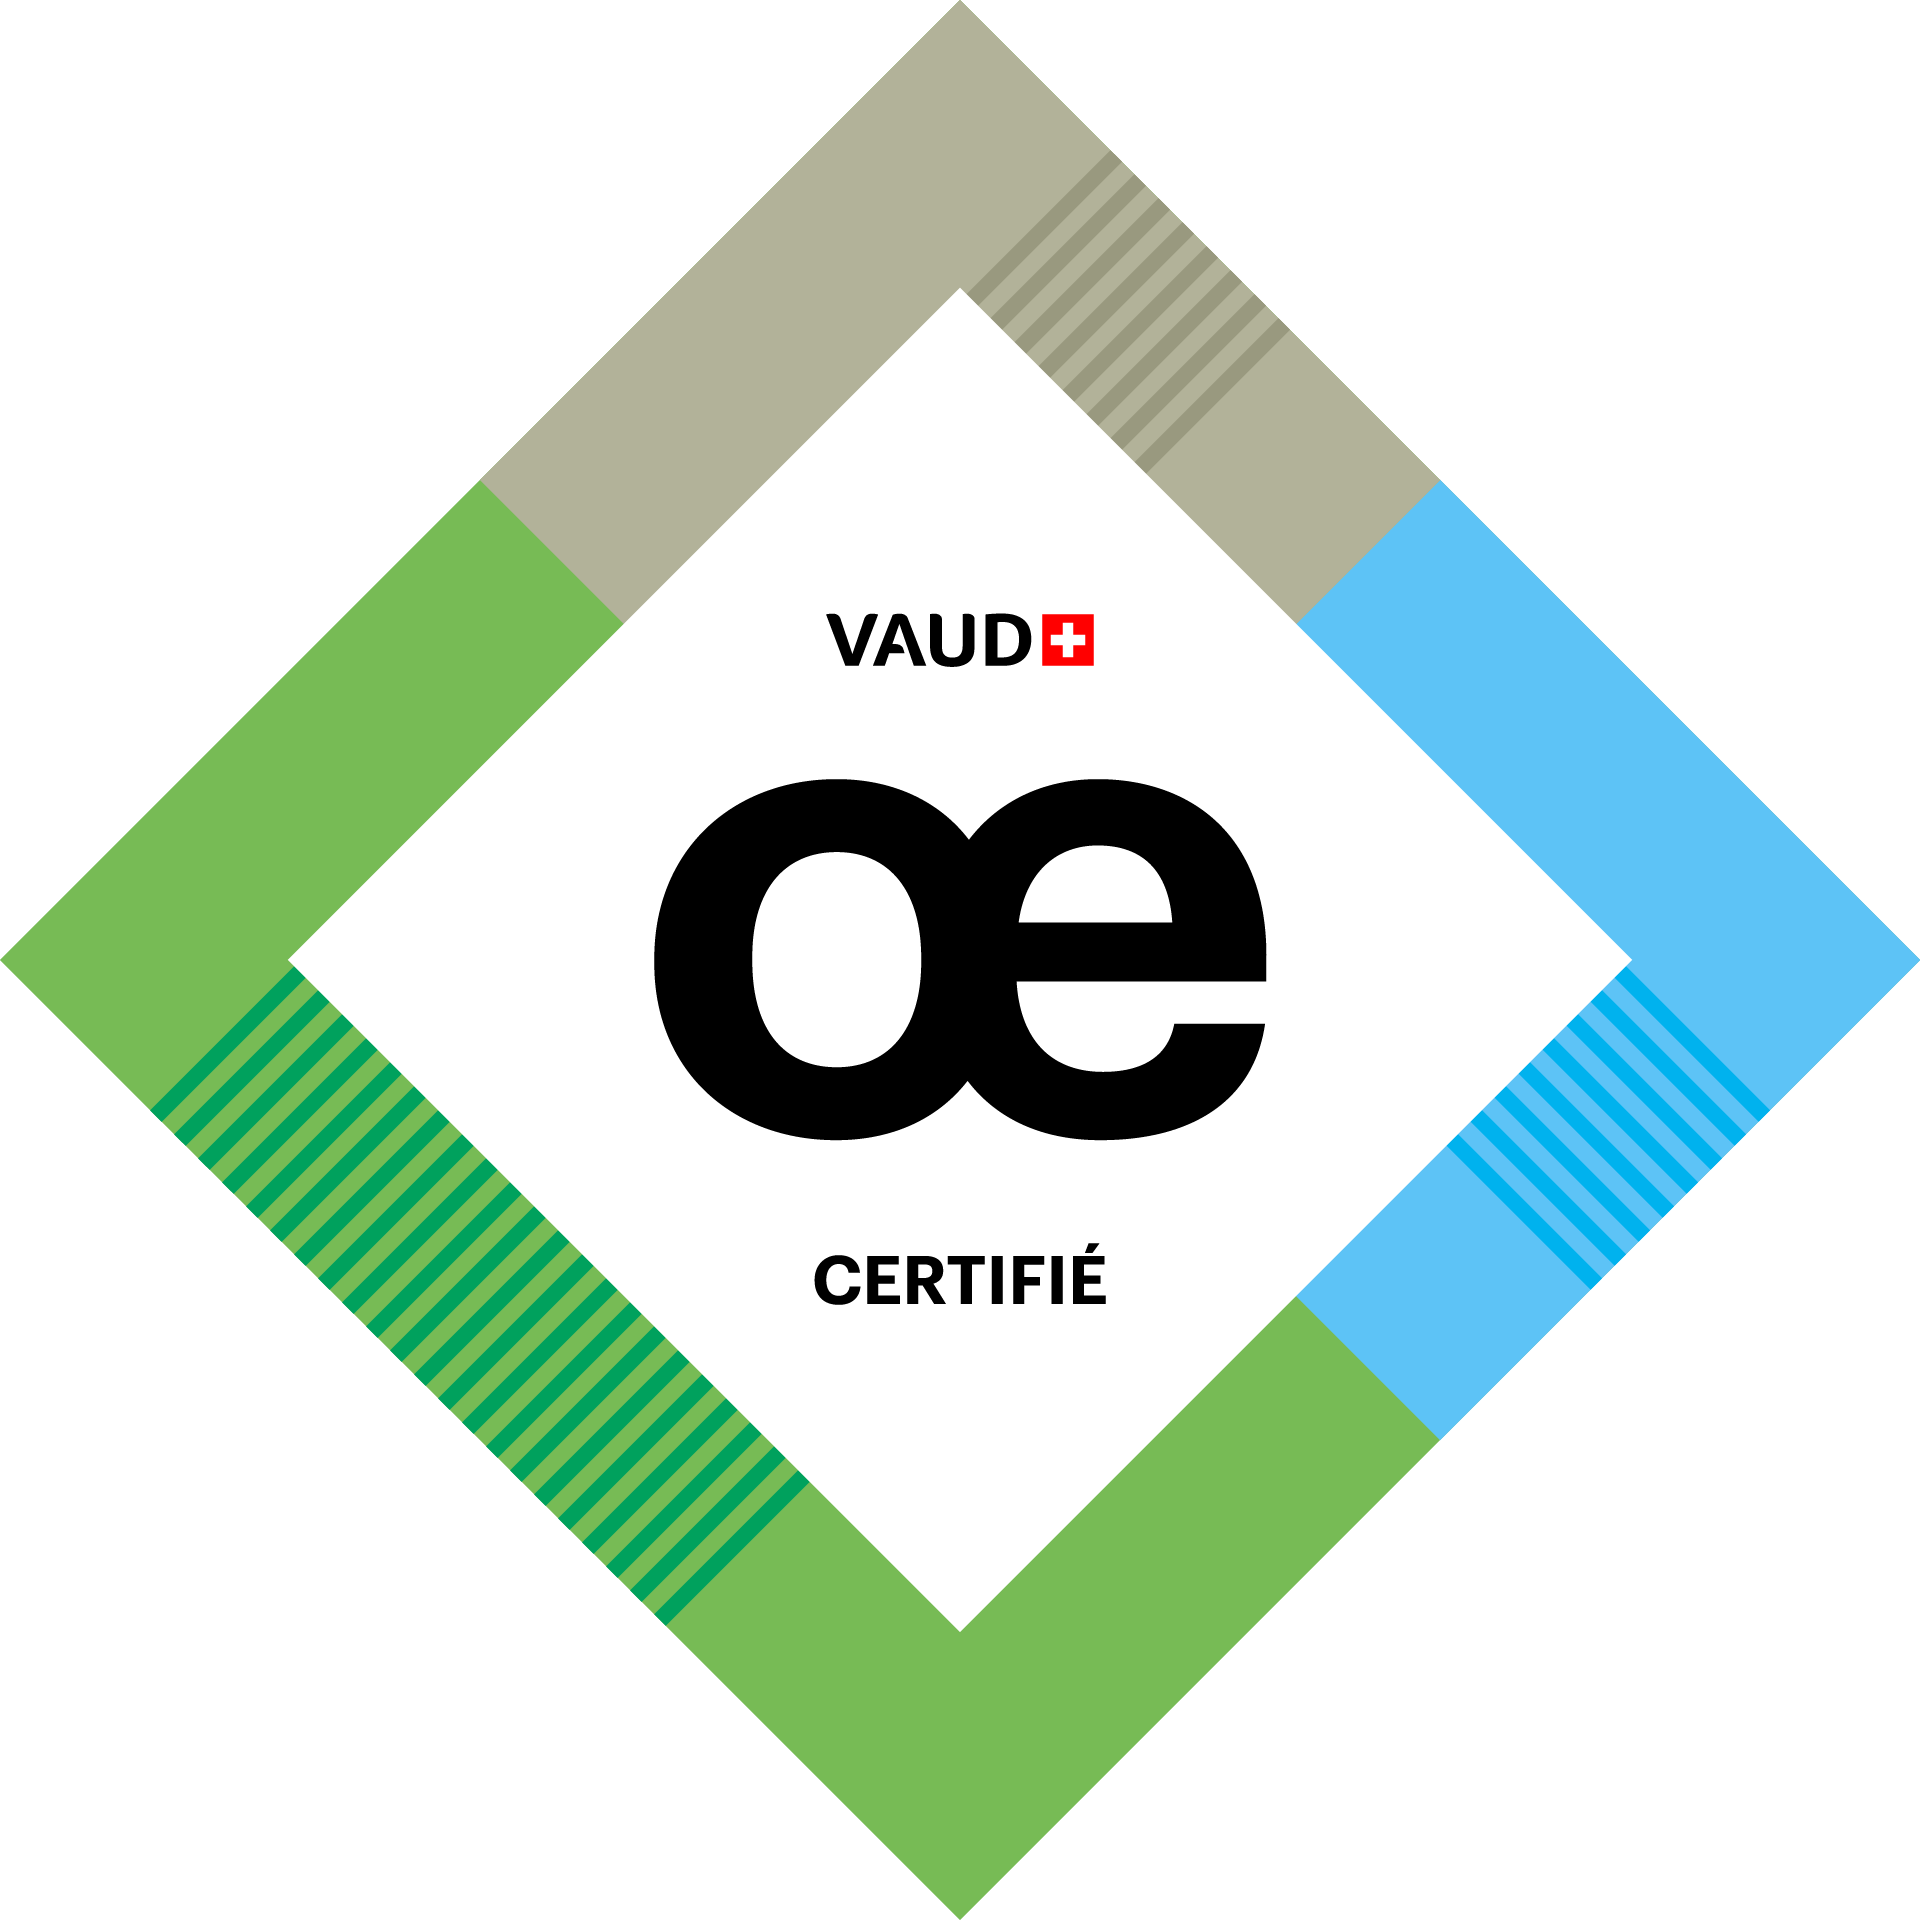 VOE-Label-Certifie-Digital-A